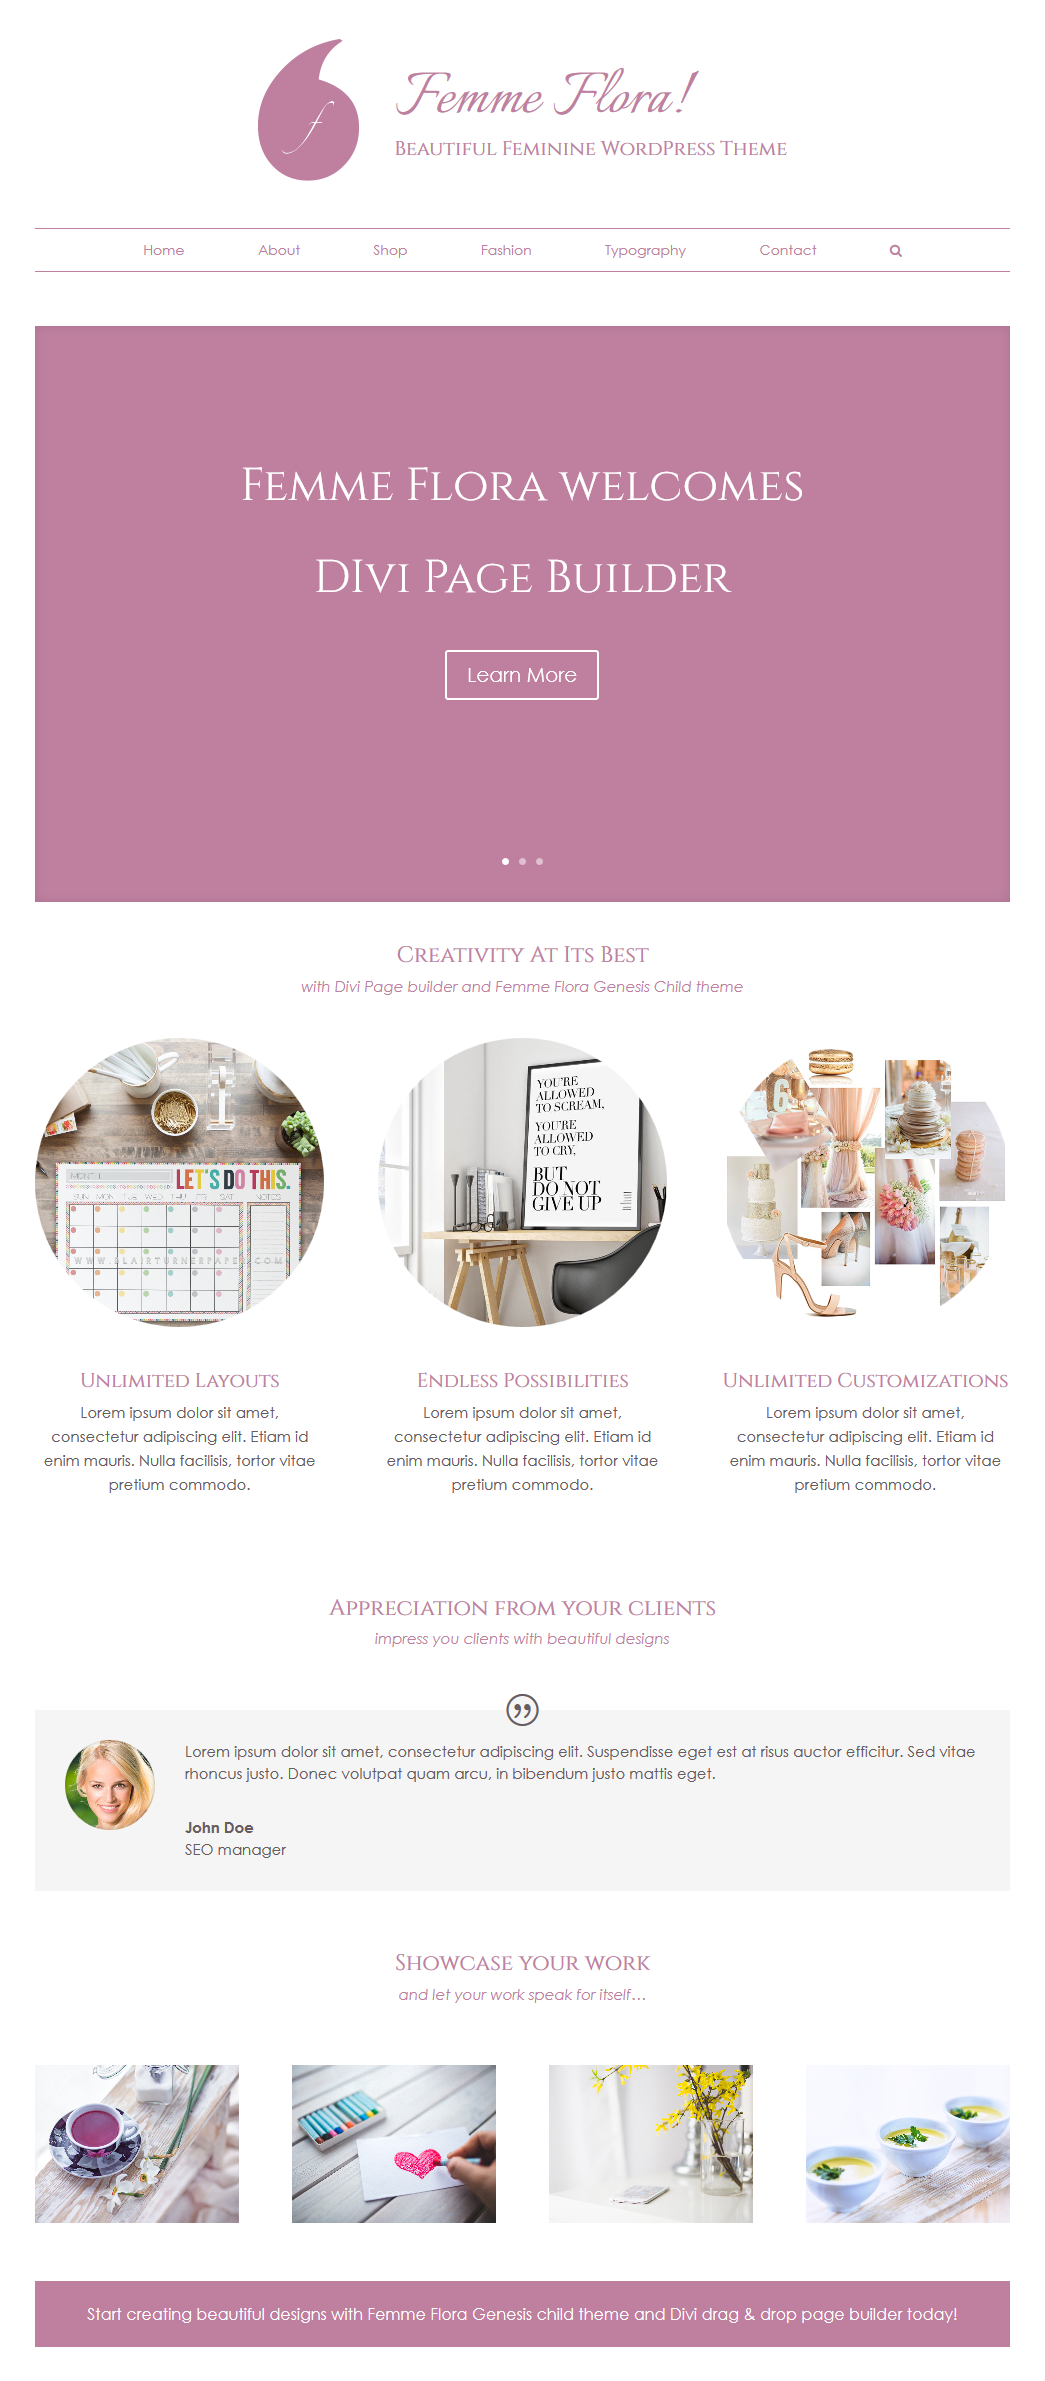 Divi Page Builder With Femme Flora Genesis Child Theme